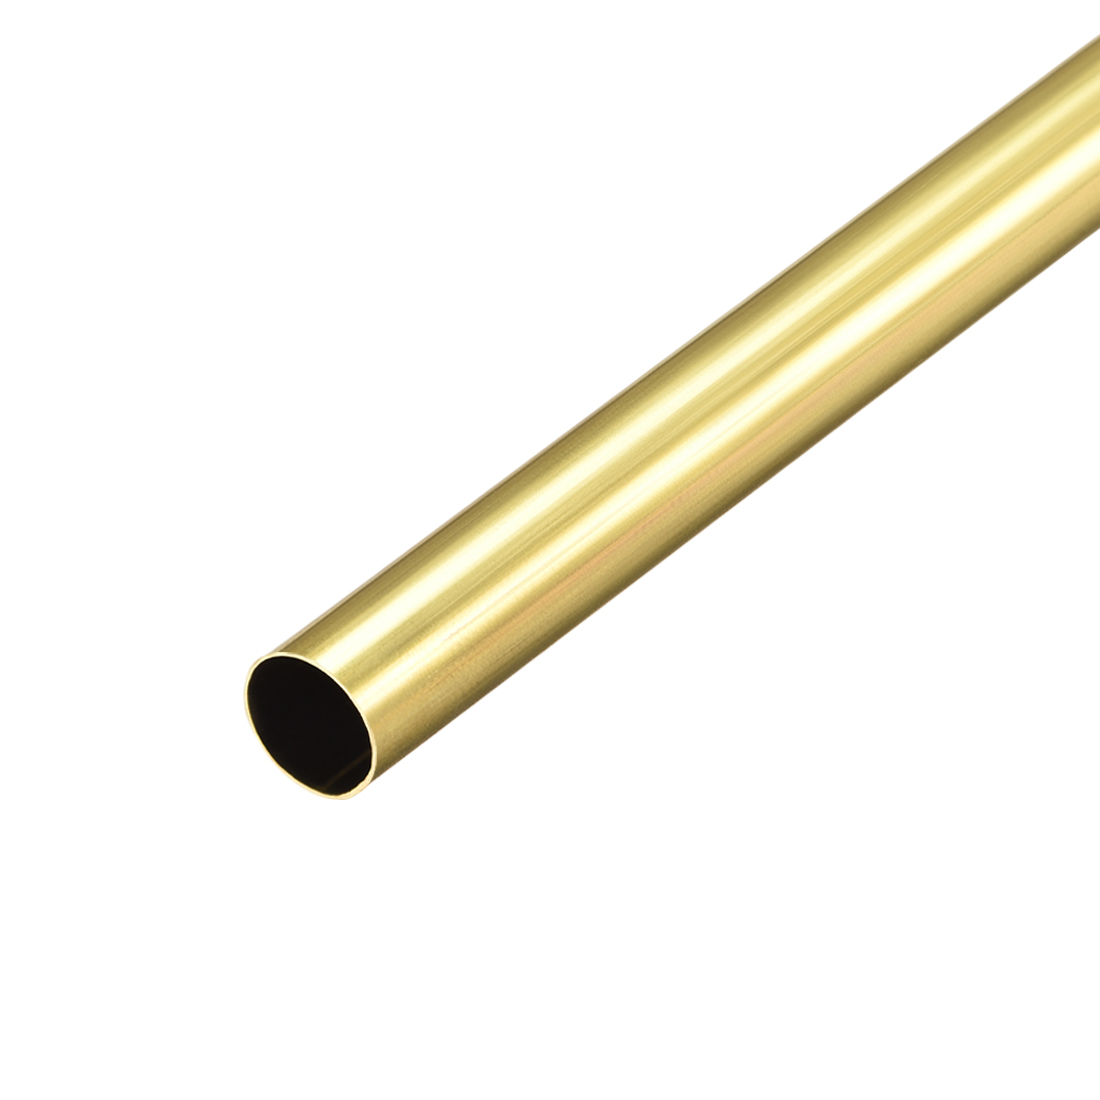 uxcell Brass Round Tube 6mm OD 0.5mm Wall Thickness 30mm Length Seamless Pipe Tubing for DIY Crafts 30 Pcs